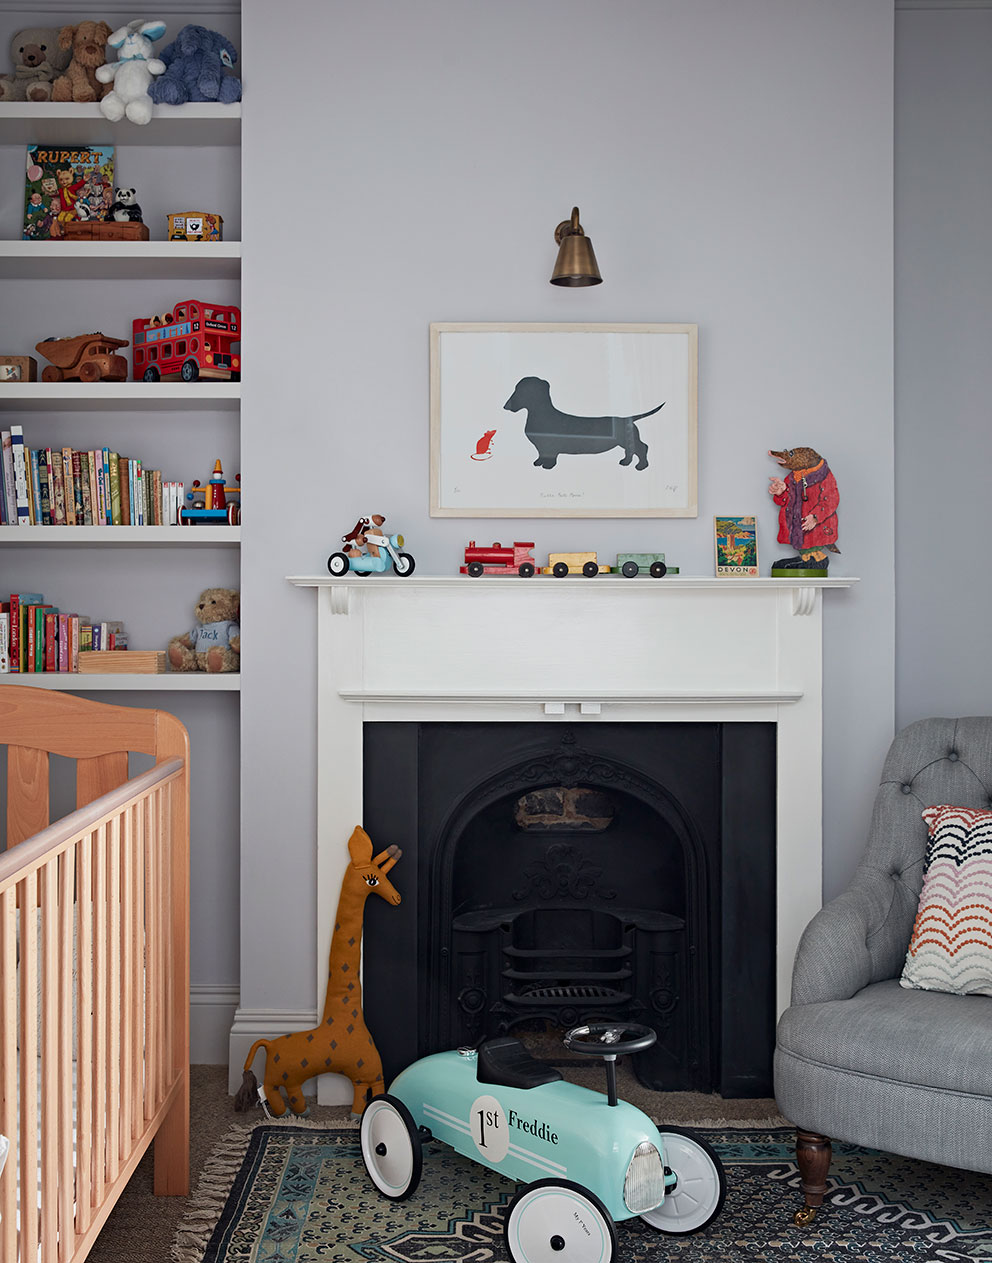 Child's room with grey walls and chair, filled with brightly coloured toys